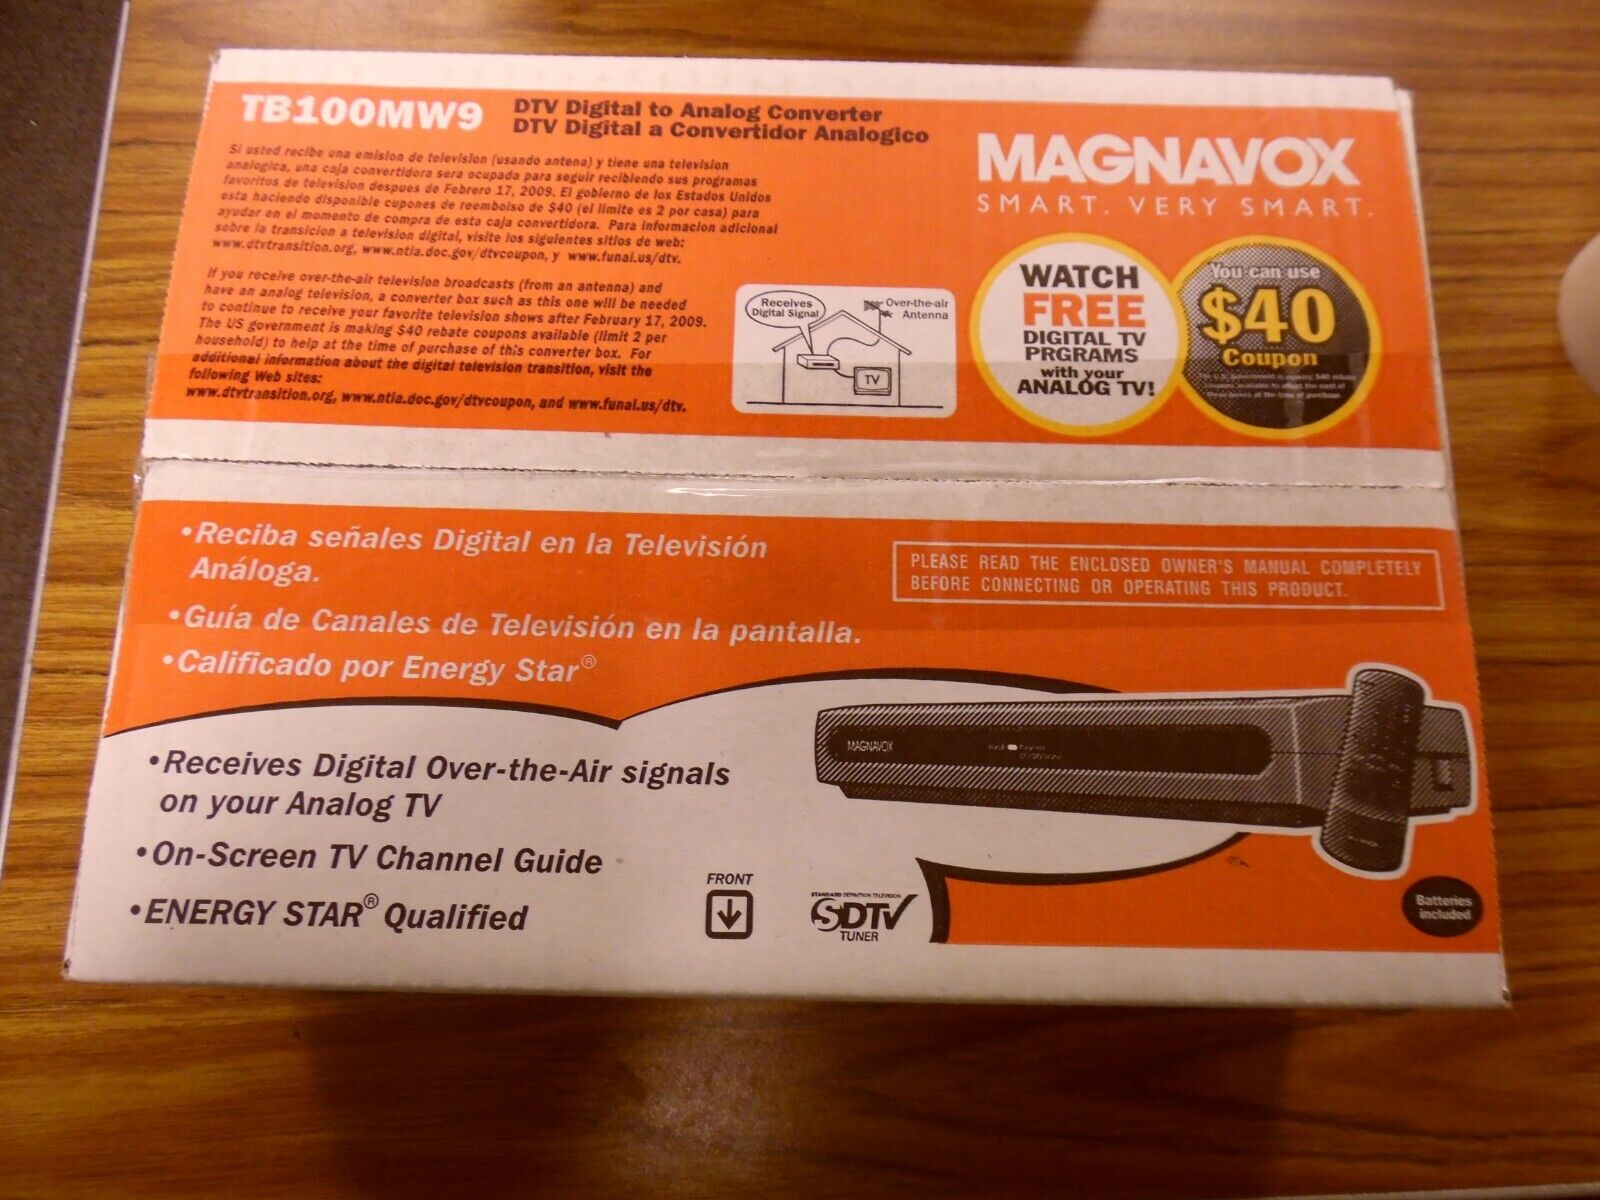 Magnavox DTV Digital to Analog Converter tb100mw9